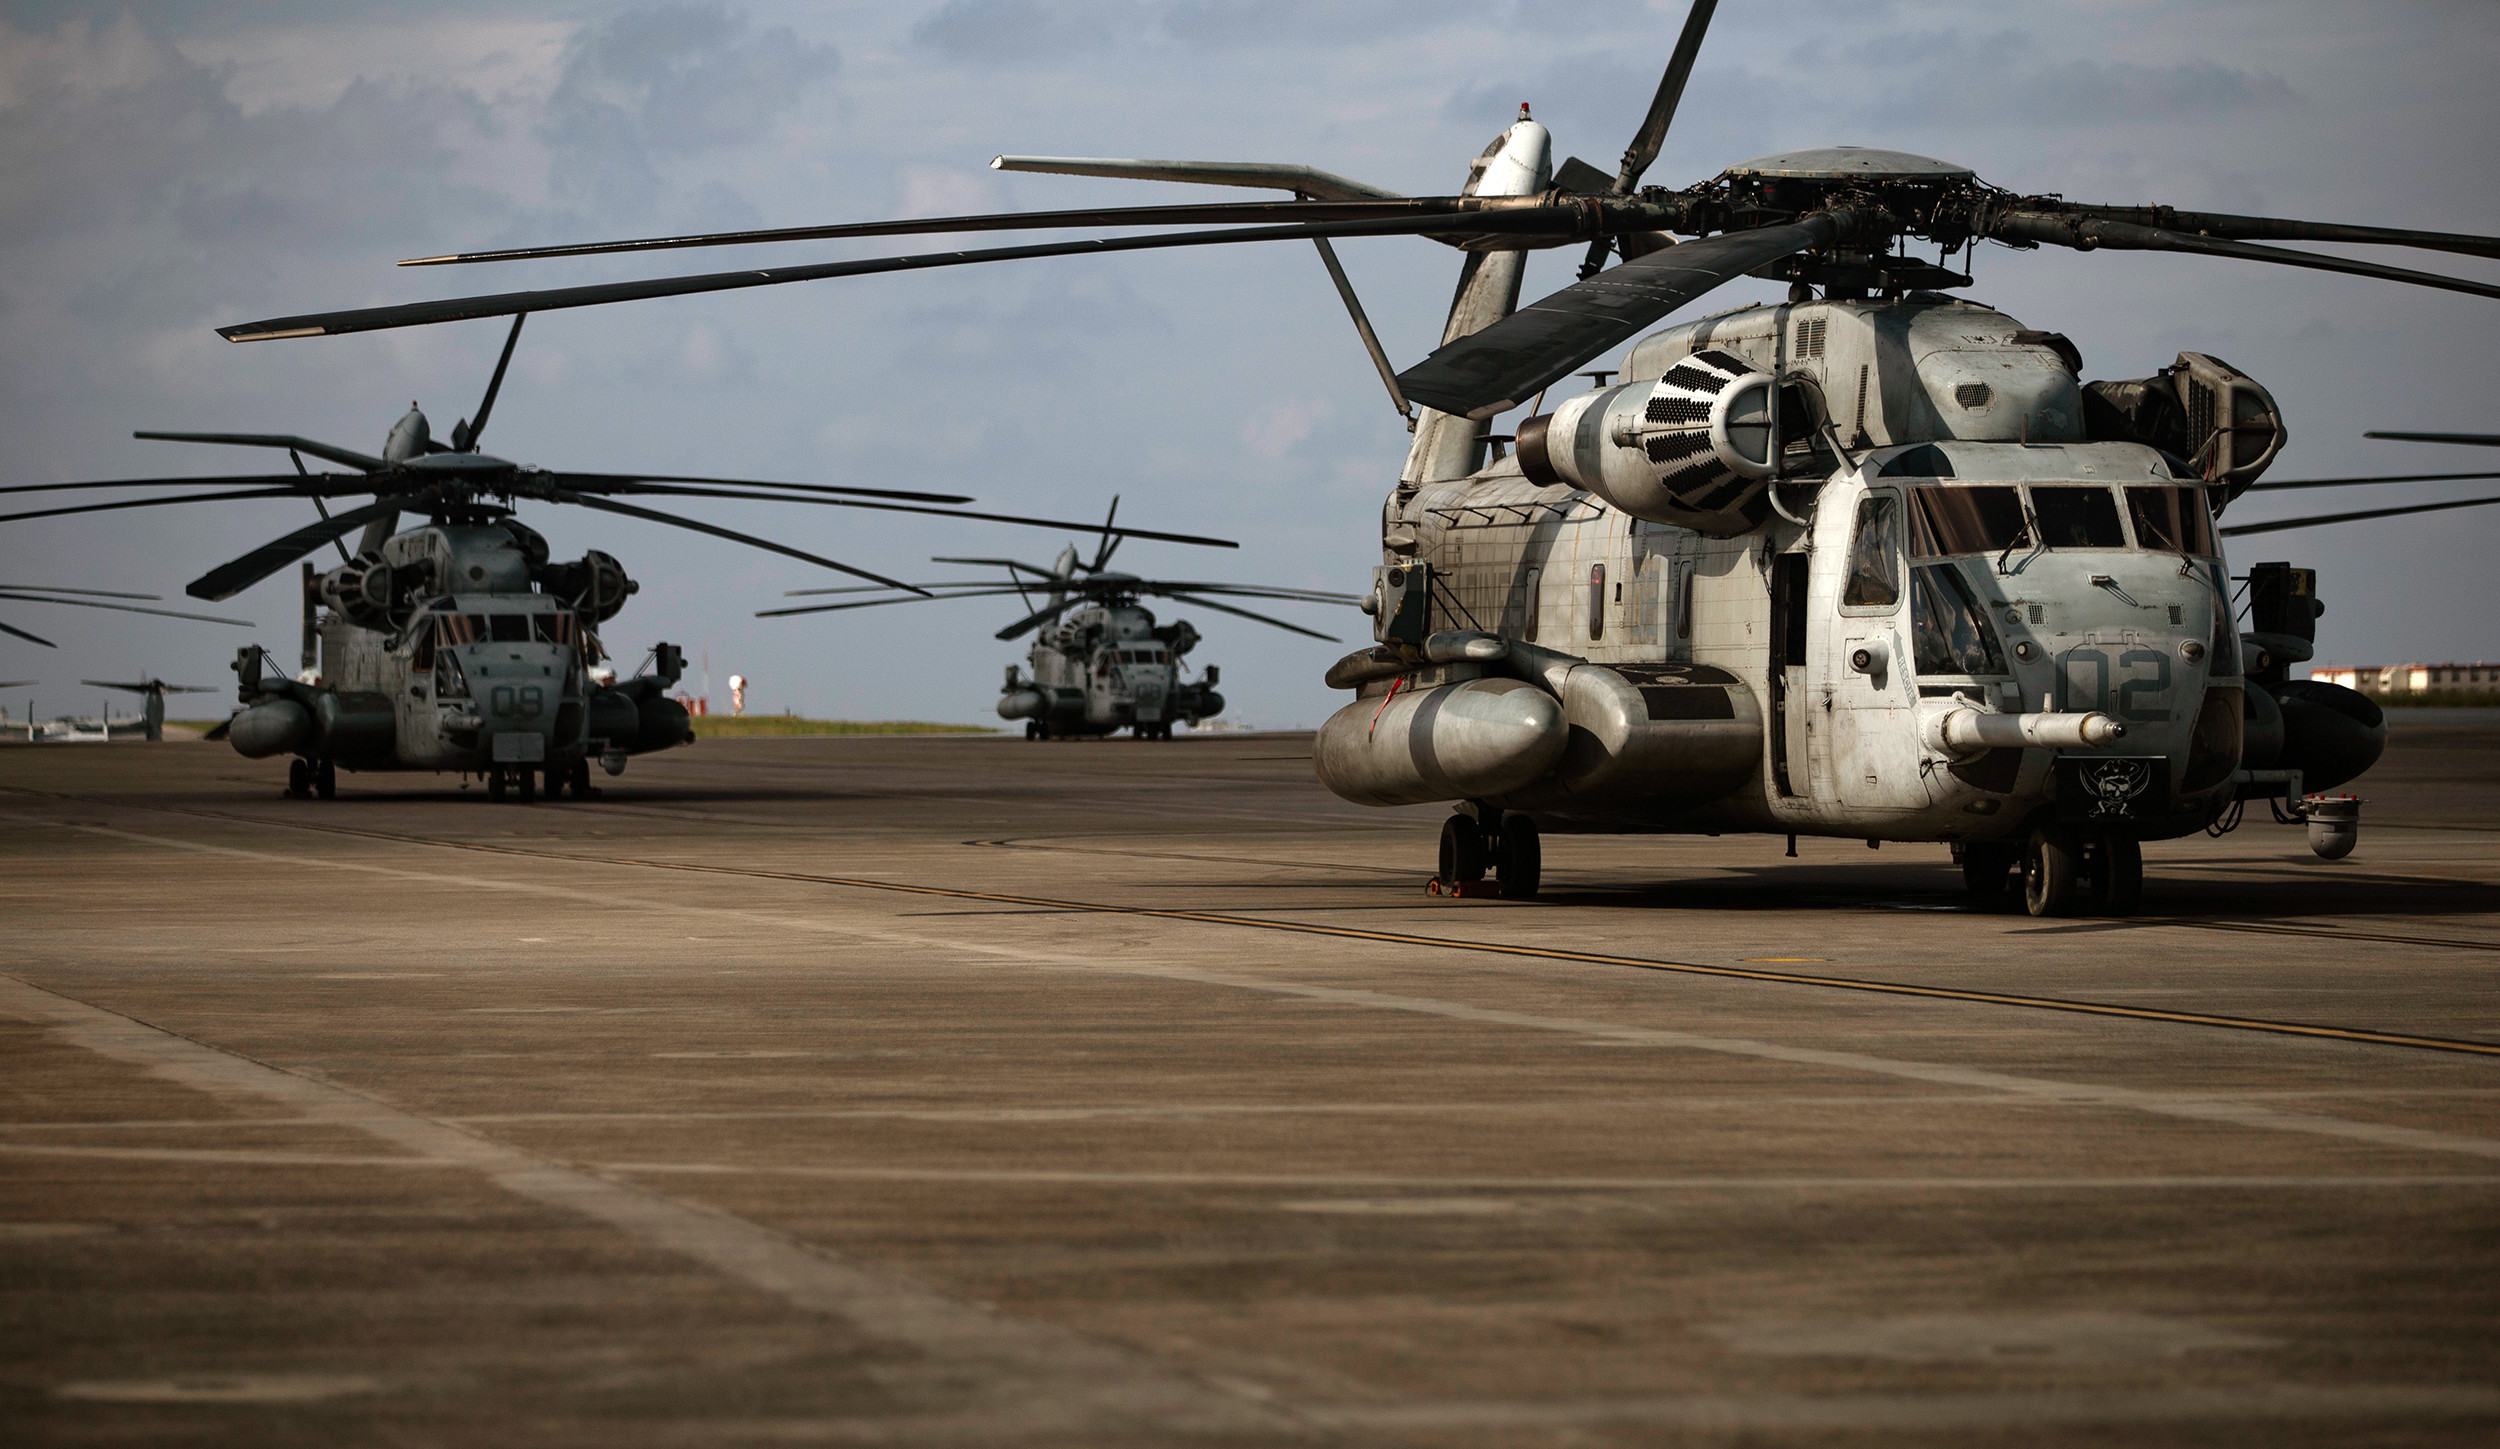 U.S. Marines – The Importance of Rapid Deployment Operations